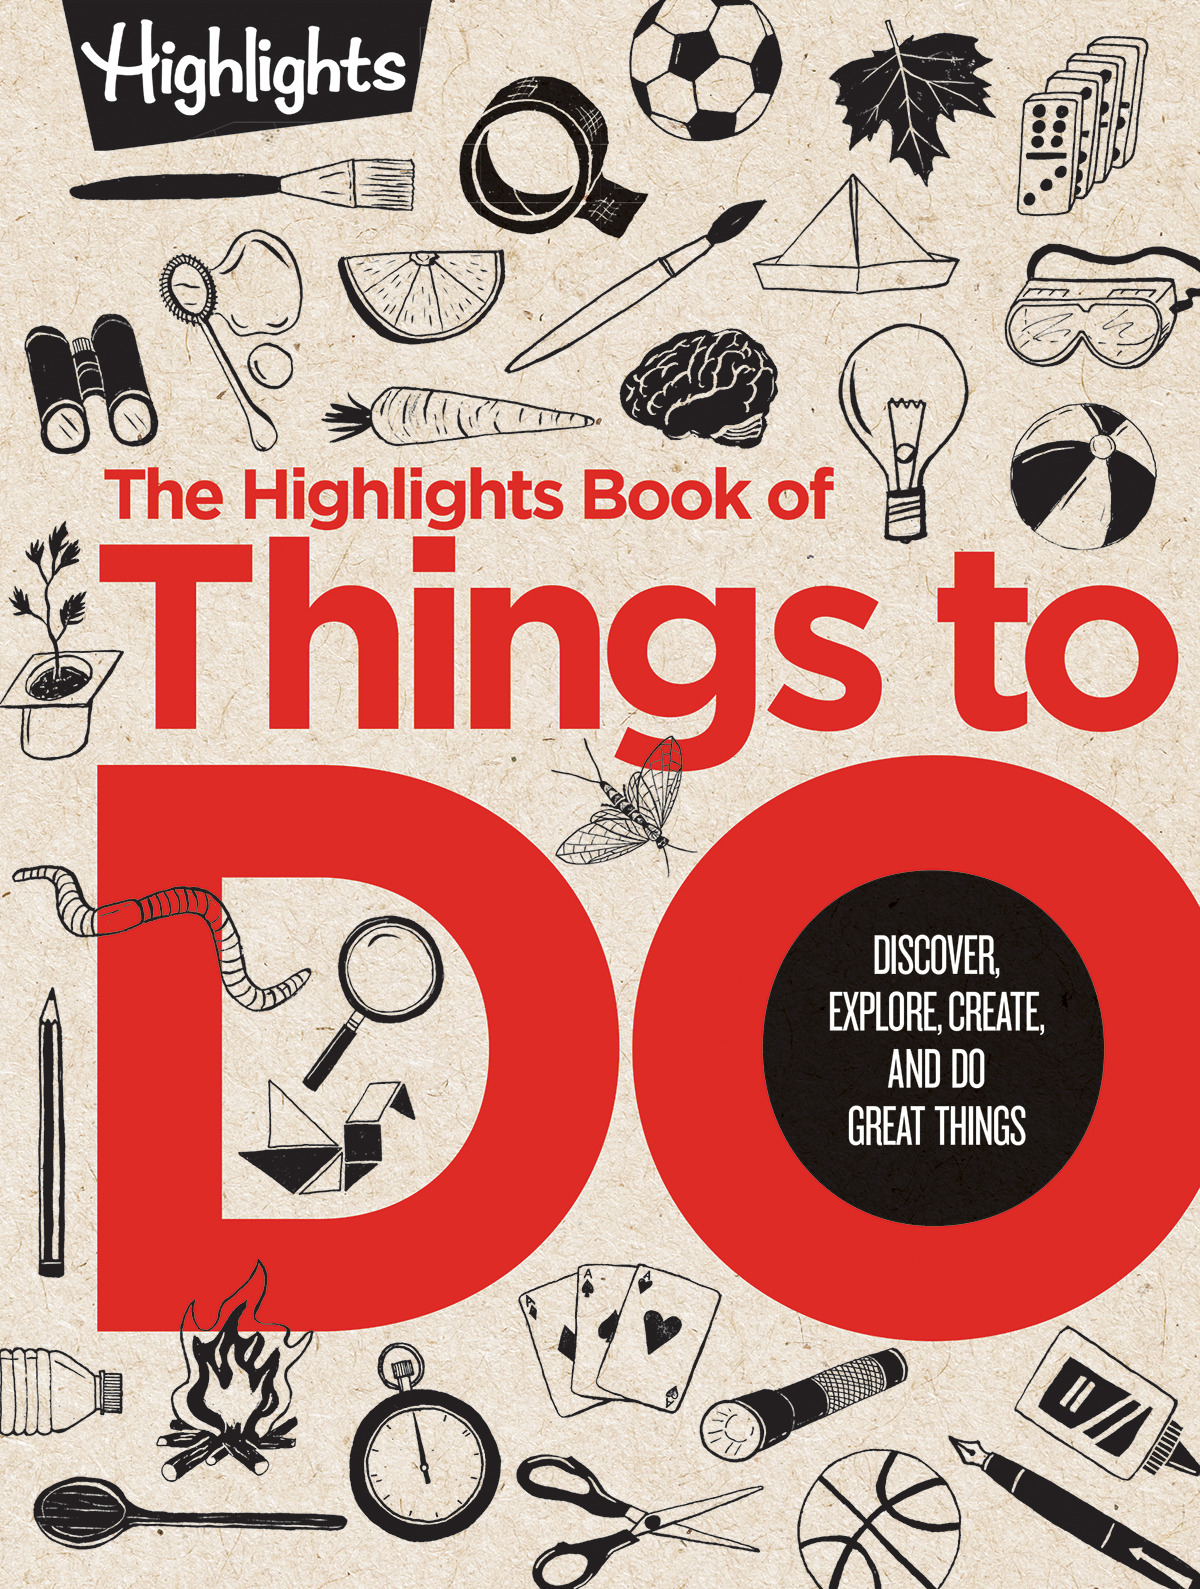 The Highlights Book of Things to Do: Discover, Explore, Create, and Do Great Things